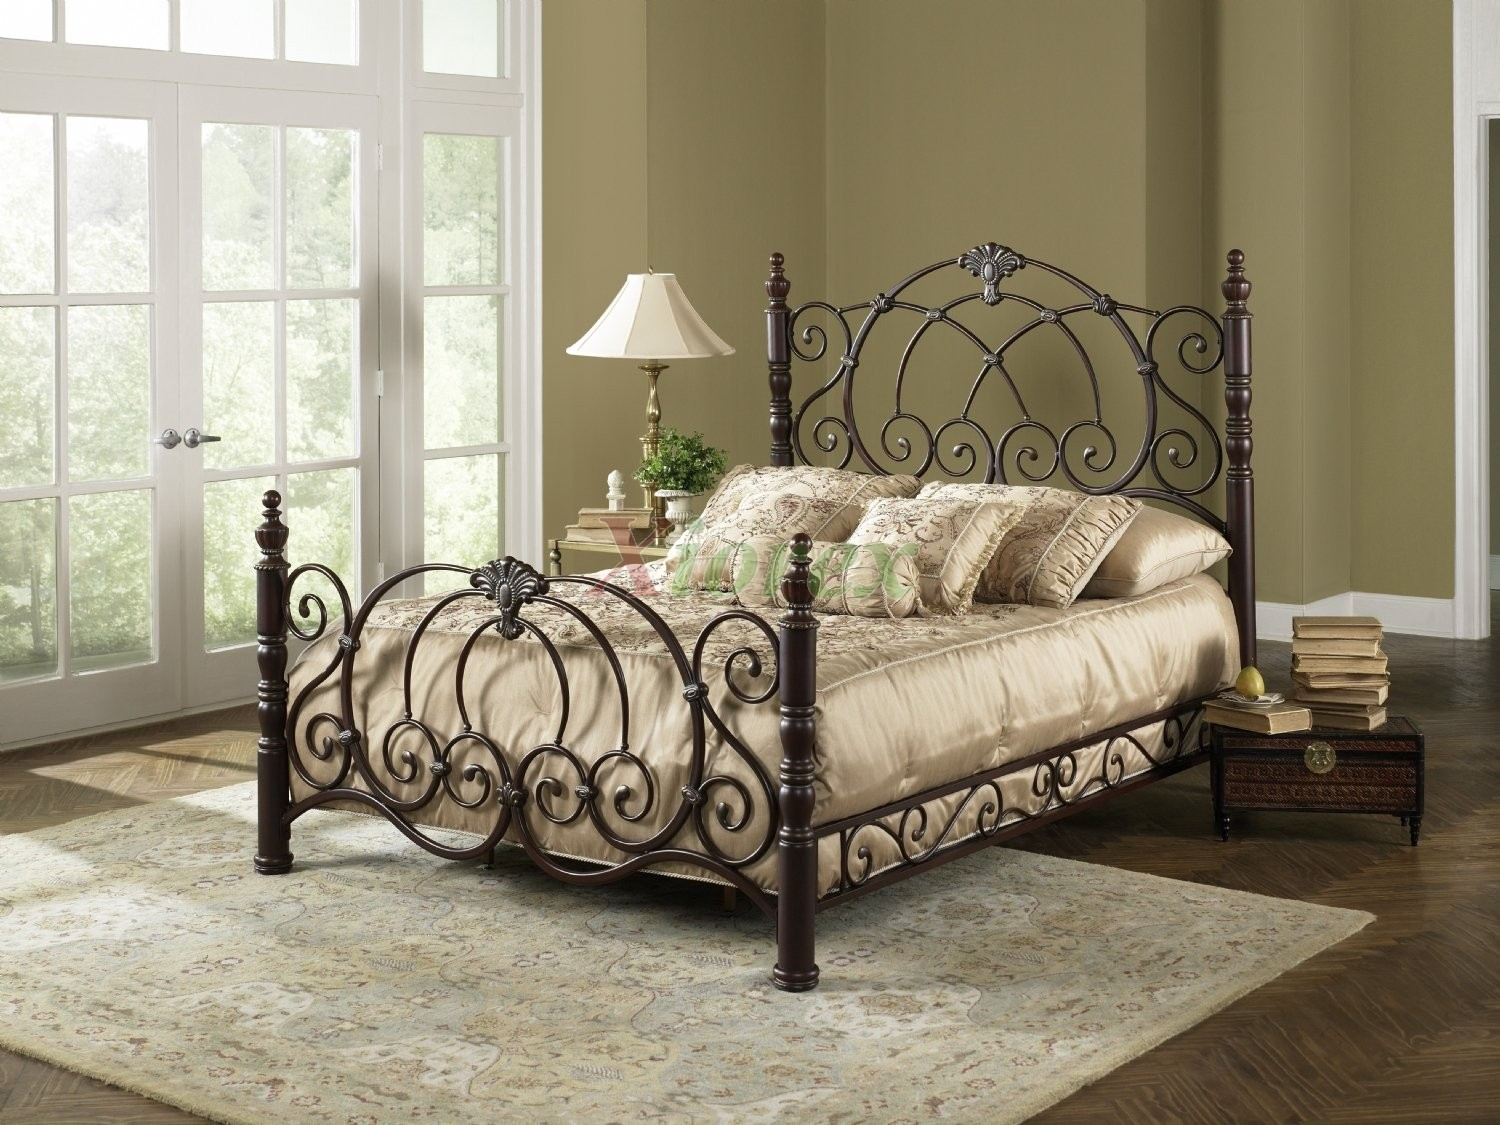 strathmore bed poster bed w side rails by fashion bed group xiorex - Fashion Bedroom Furniture